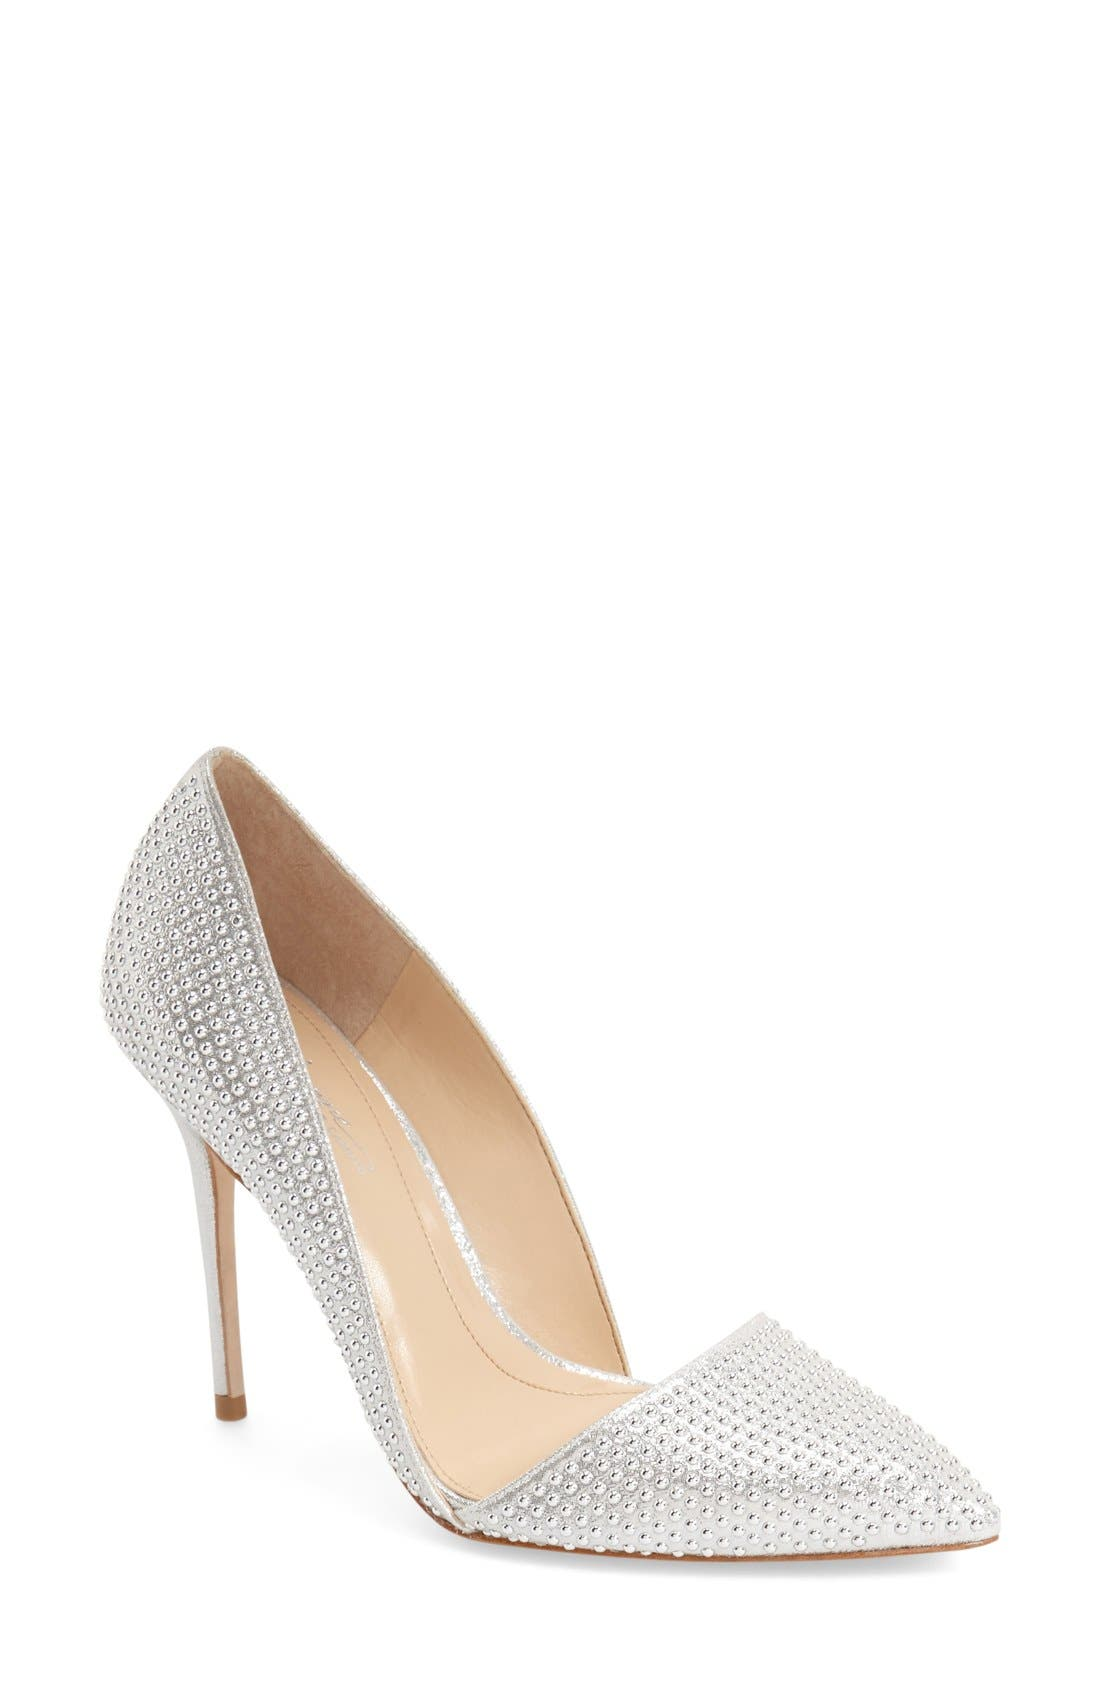 IMAGINE BY VINCE CAMUTO Imagine Vince Camuto 'Ossie'